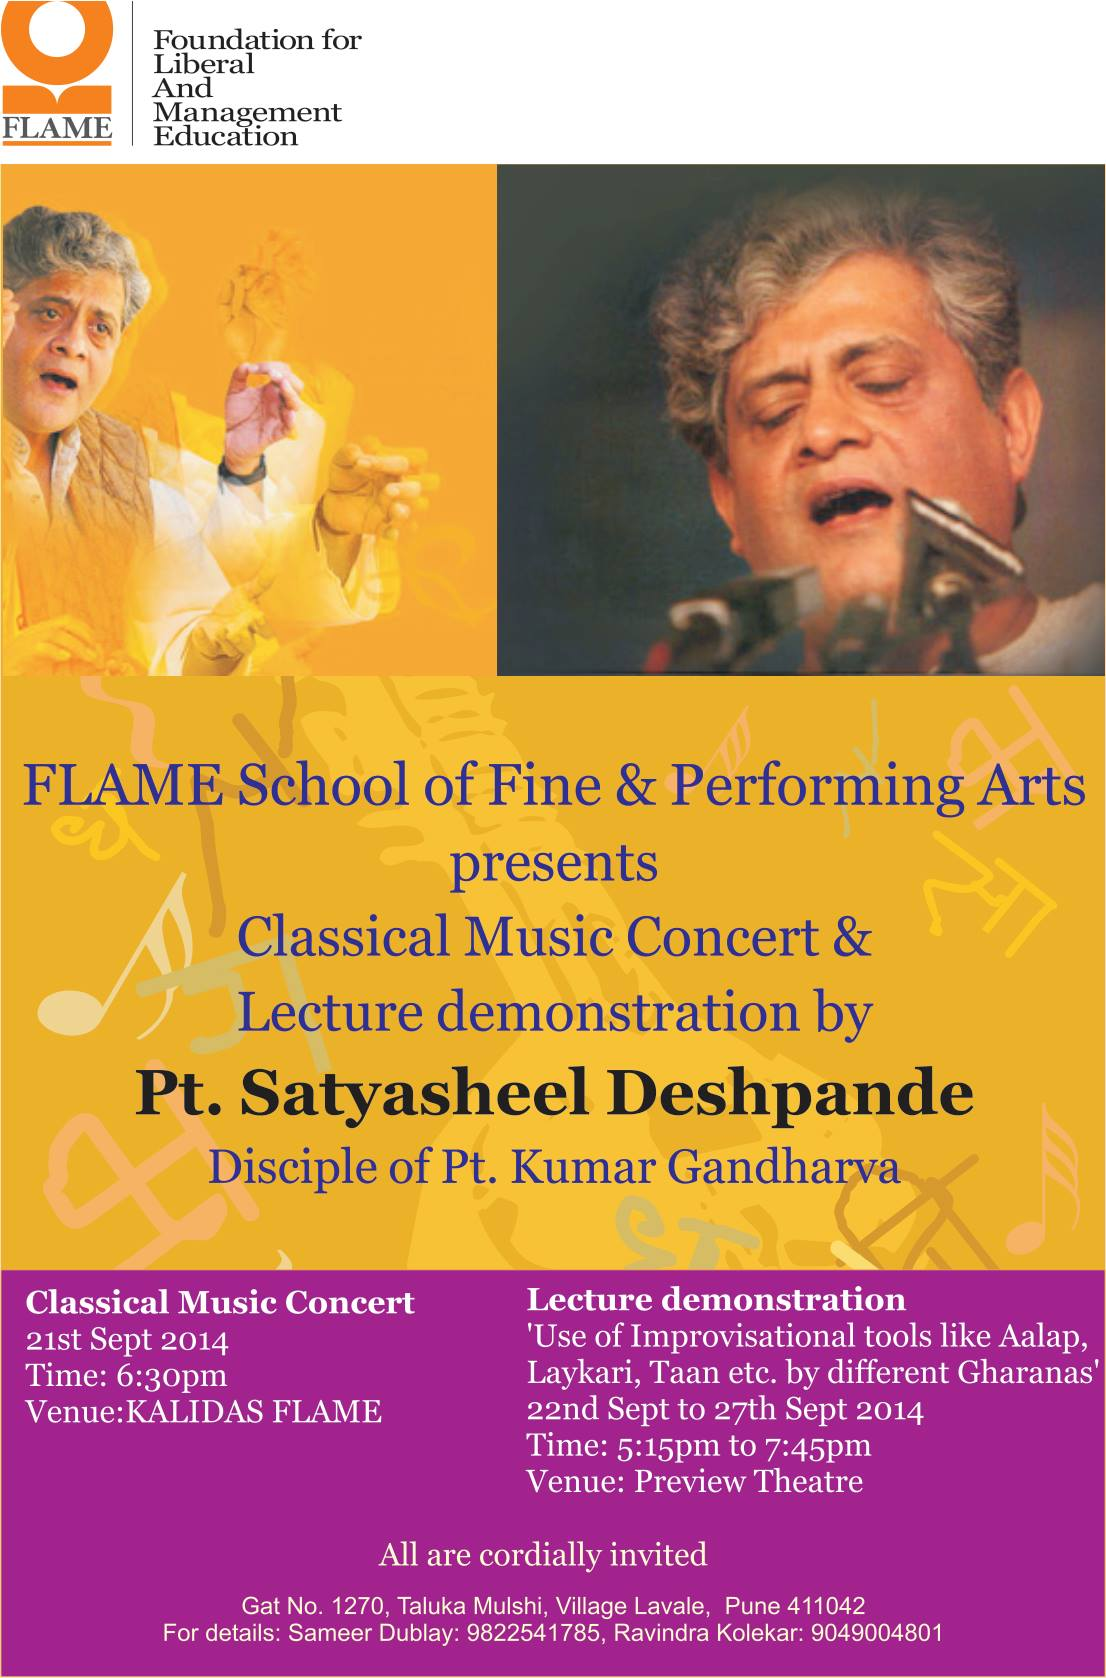 Concert and Lec-Dem at FLAME, Pune